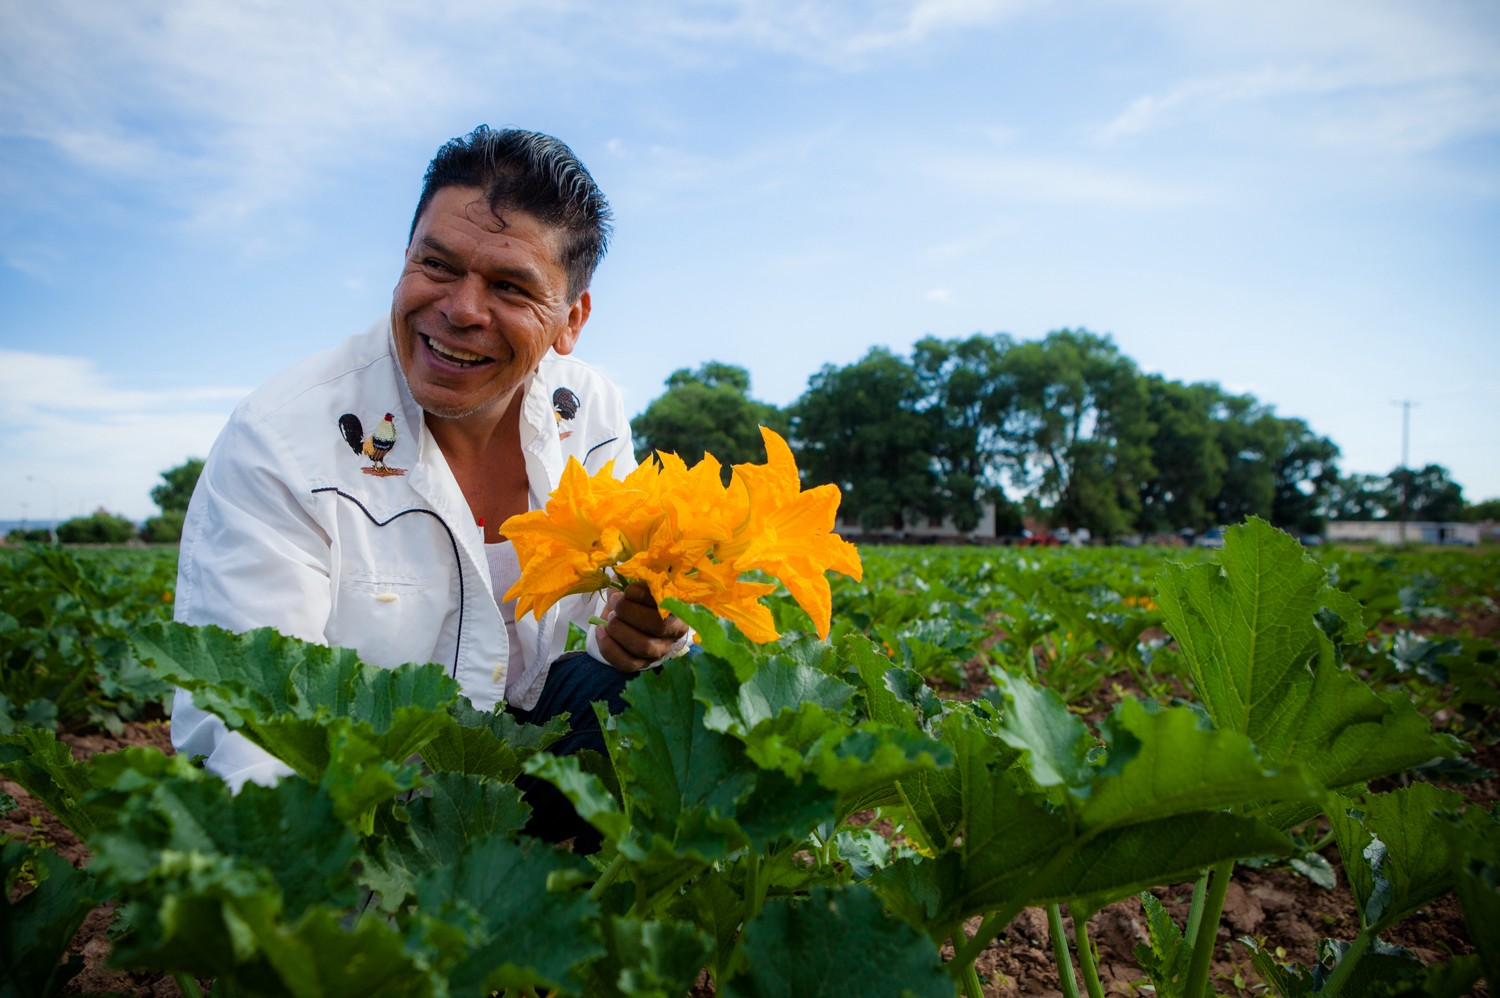 A farmer holds squash blossoms while standing amongst their crops